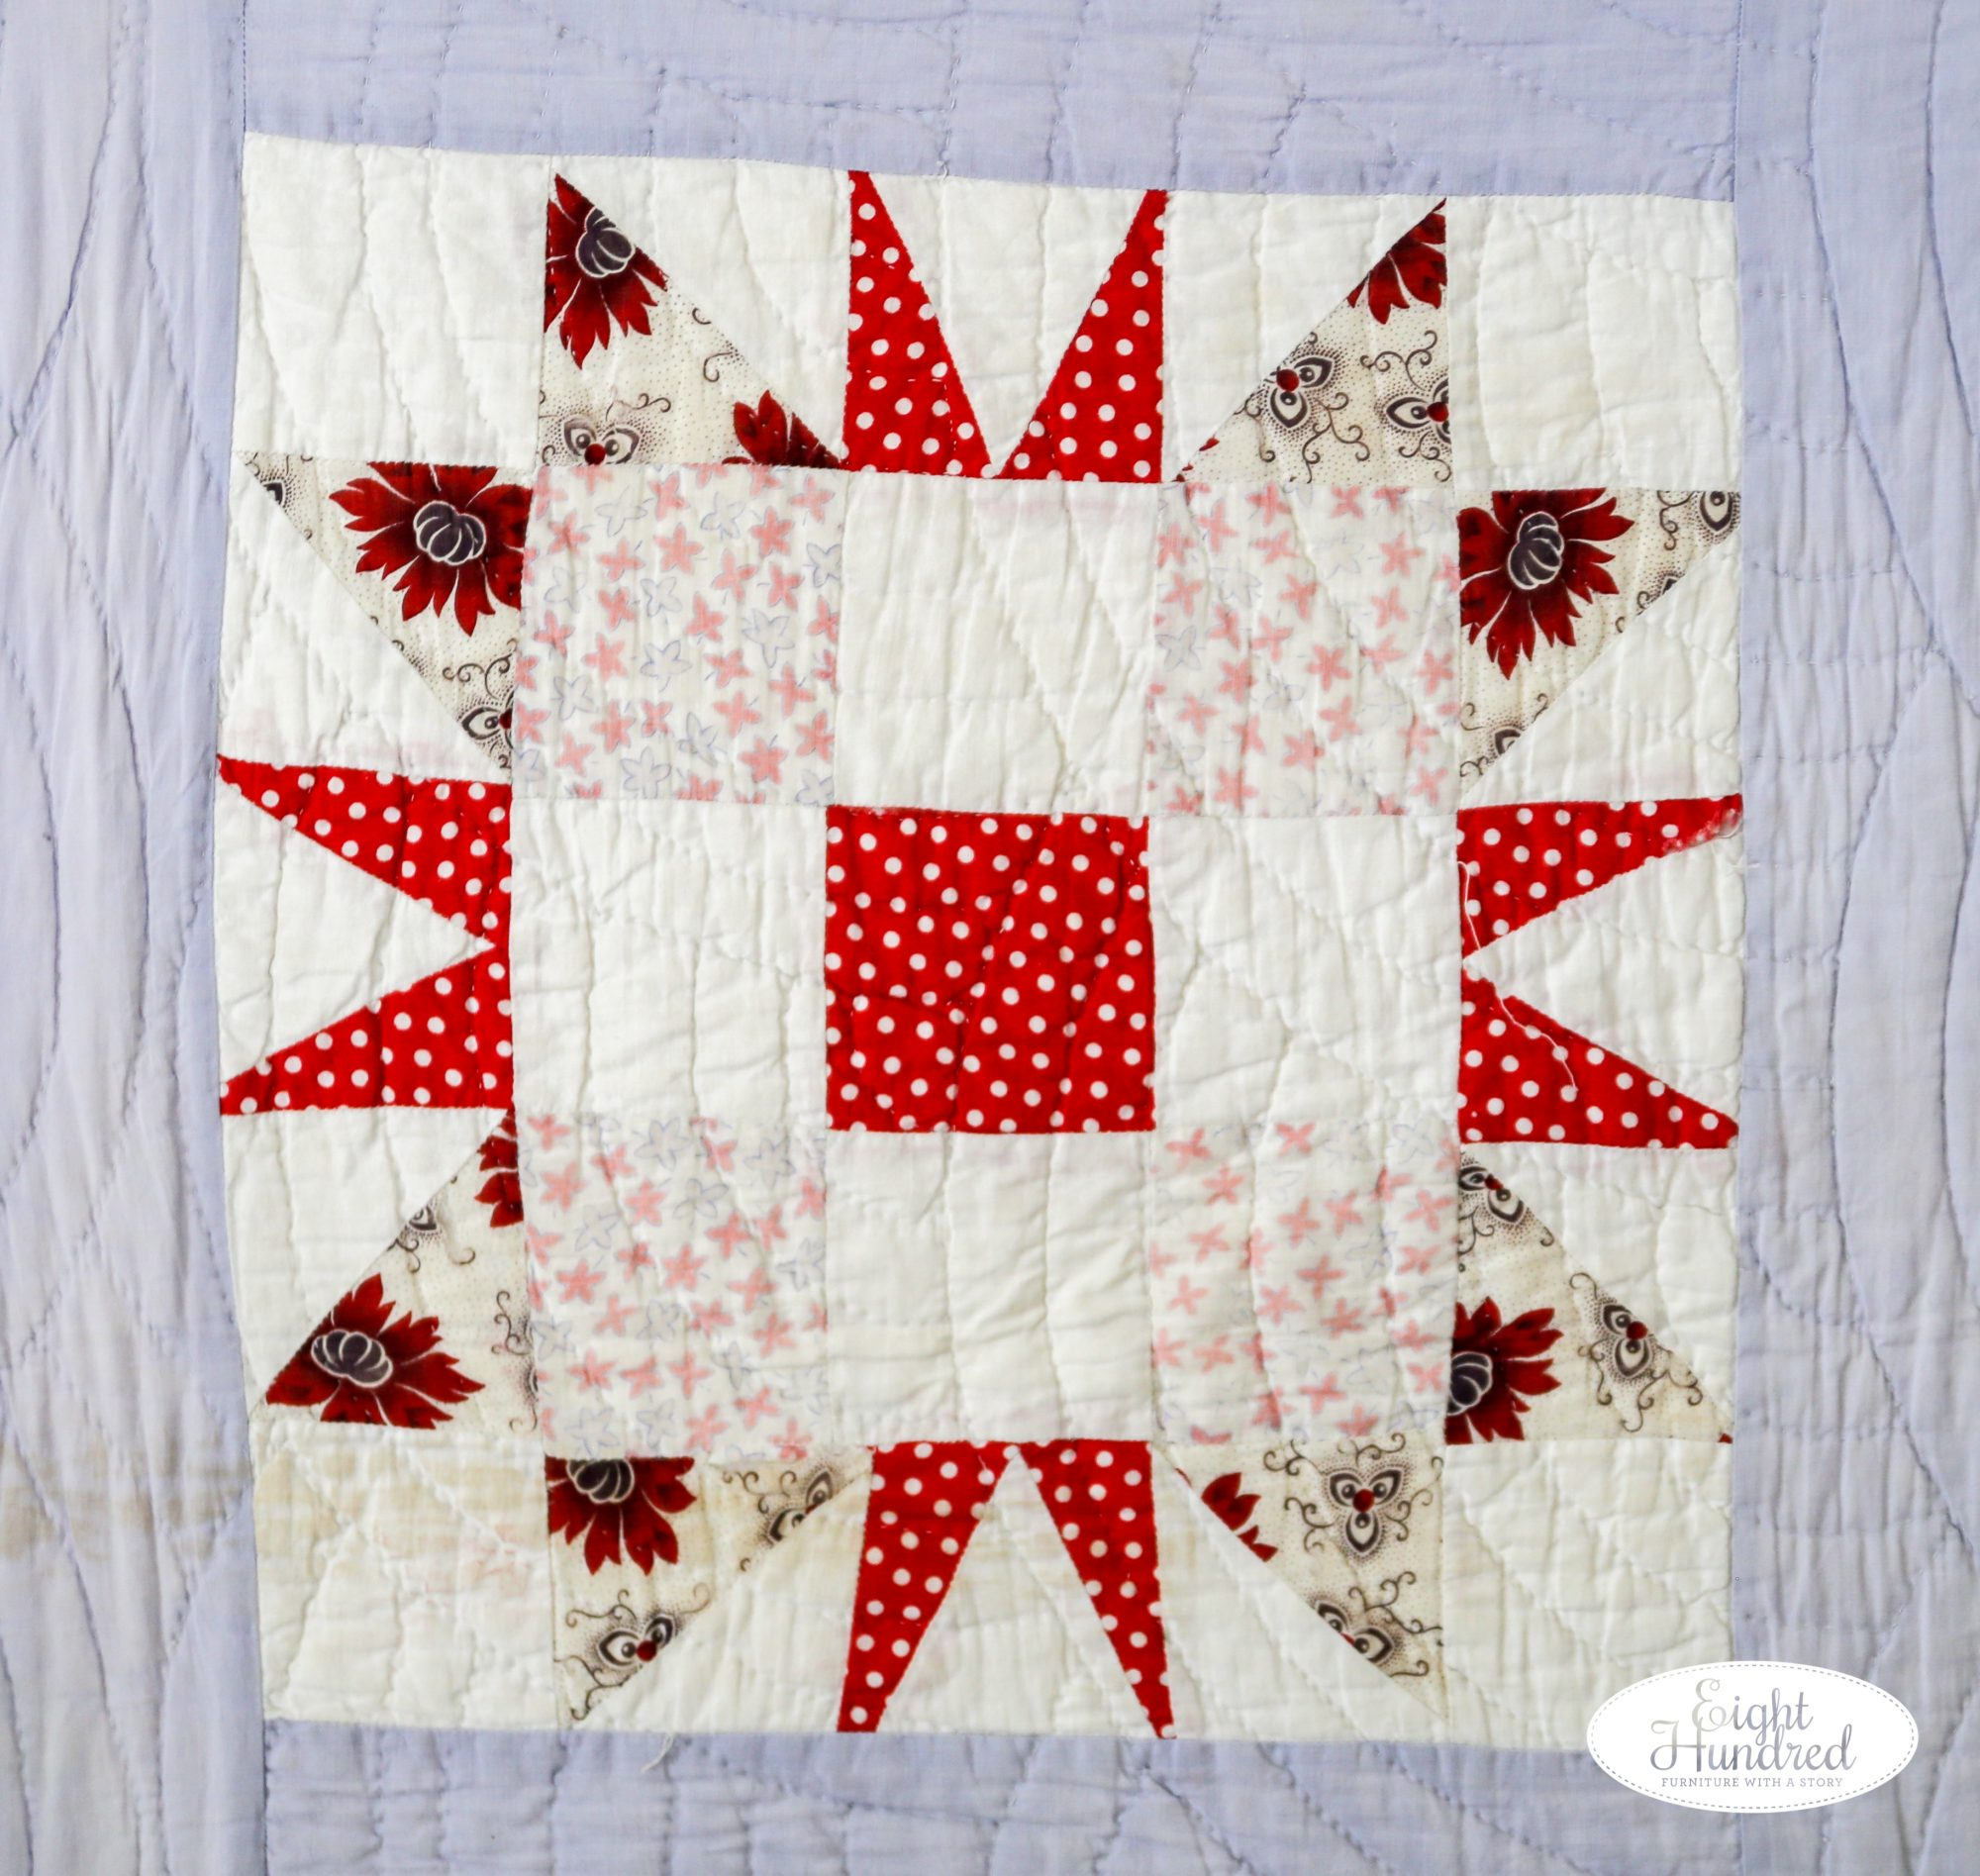 Beautiful quilt square